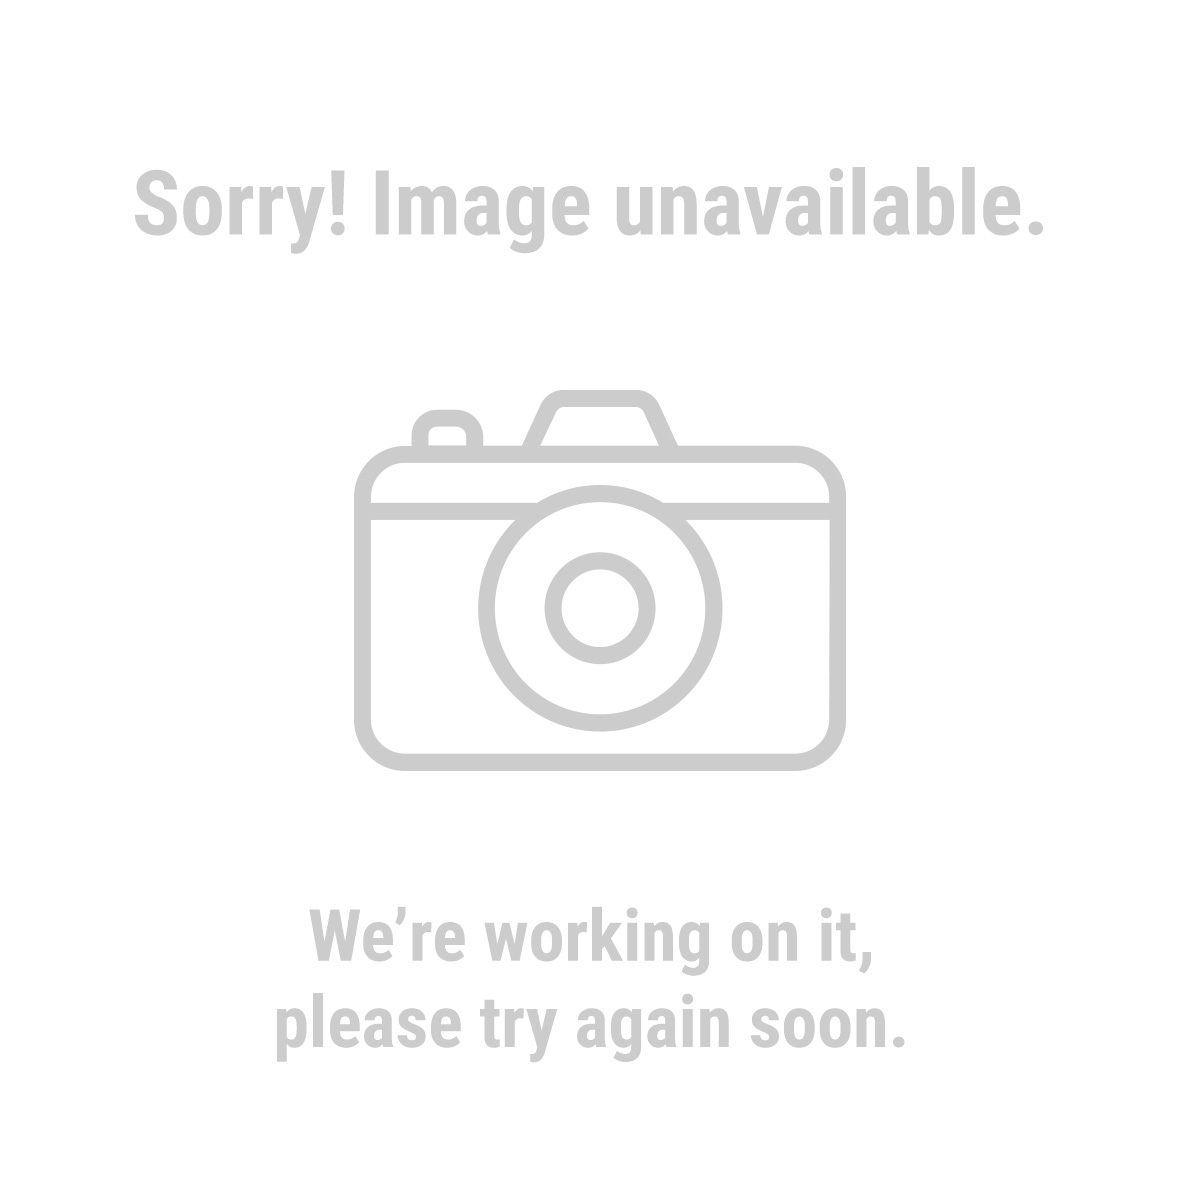 Pittsburgh 67888 3/8 in. Metric Long Ball Head Hex Socket Set 7 Piece